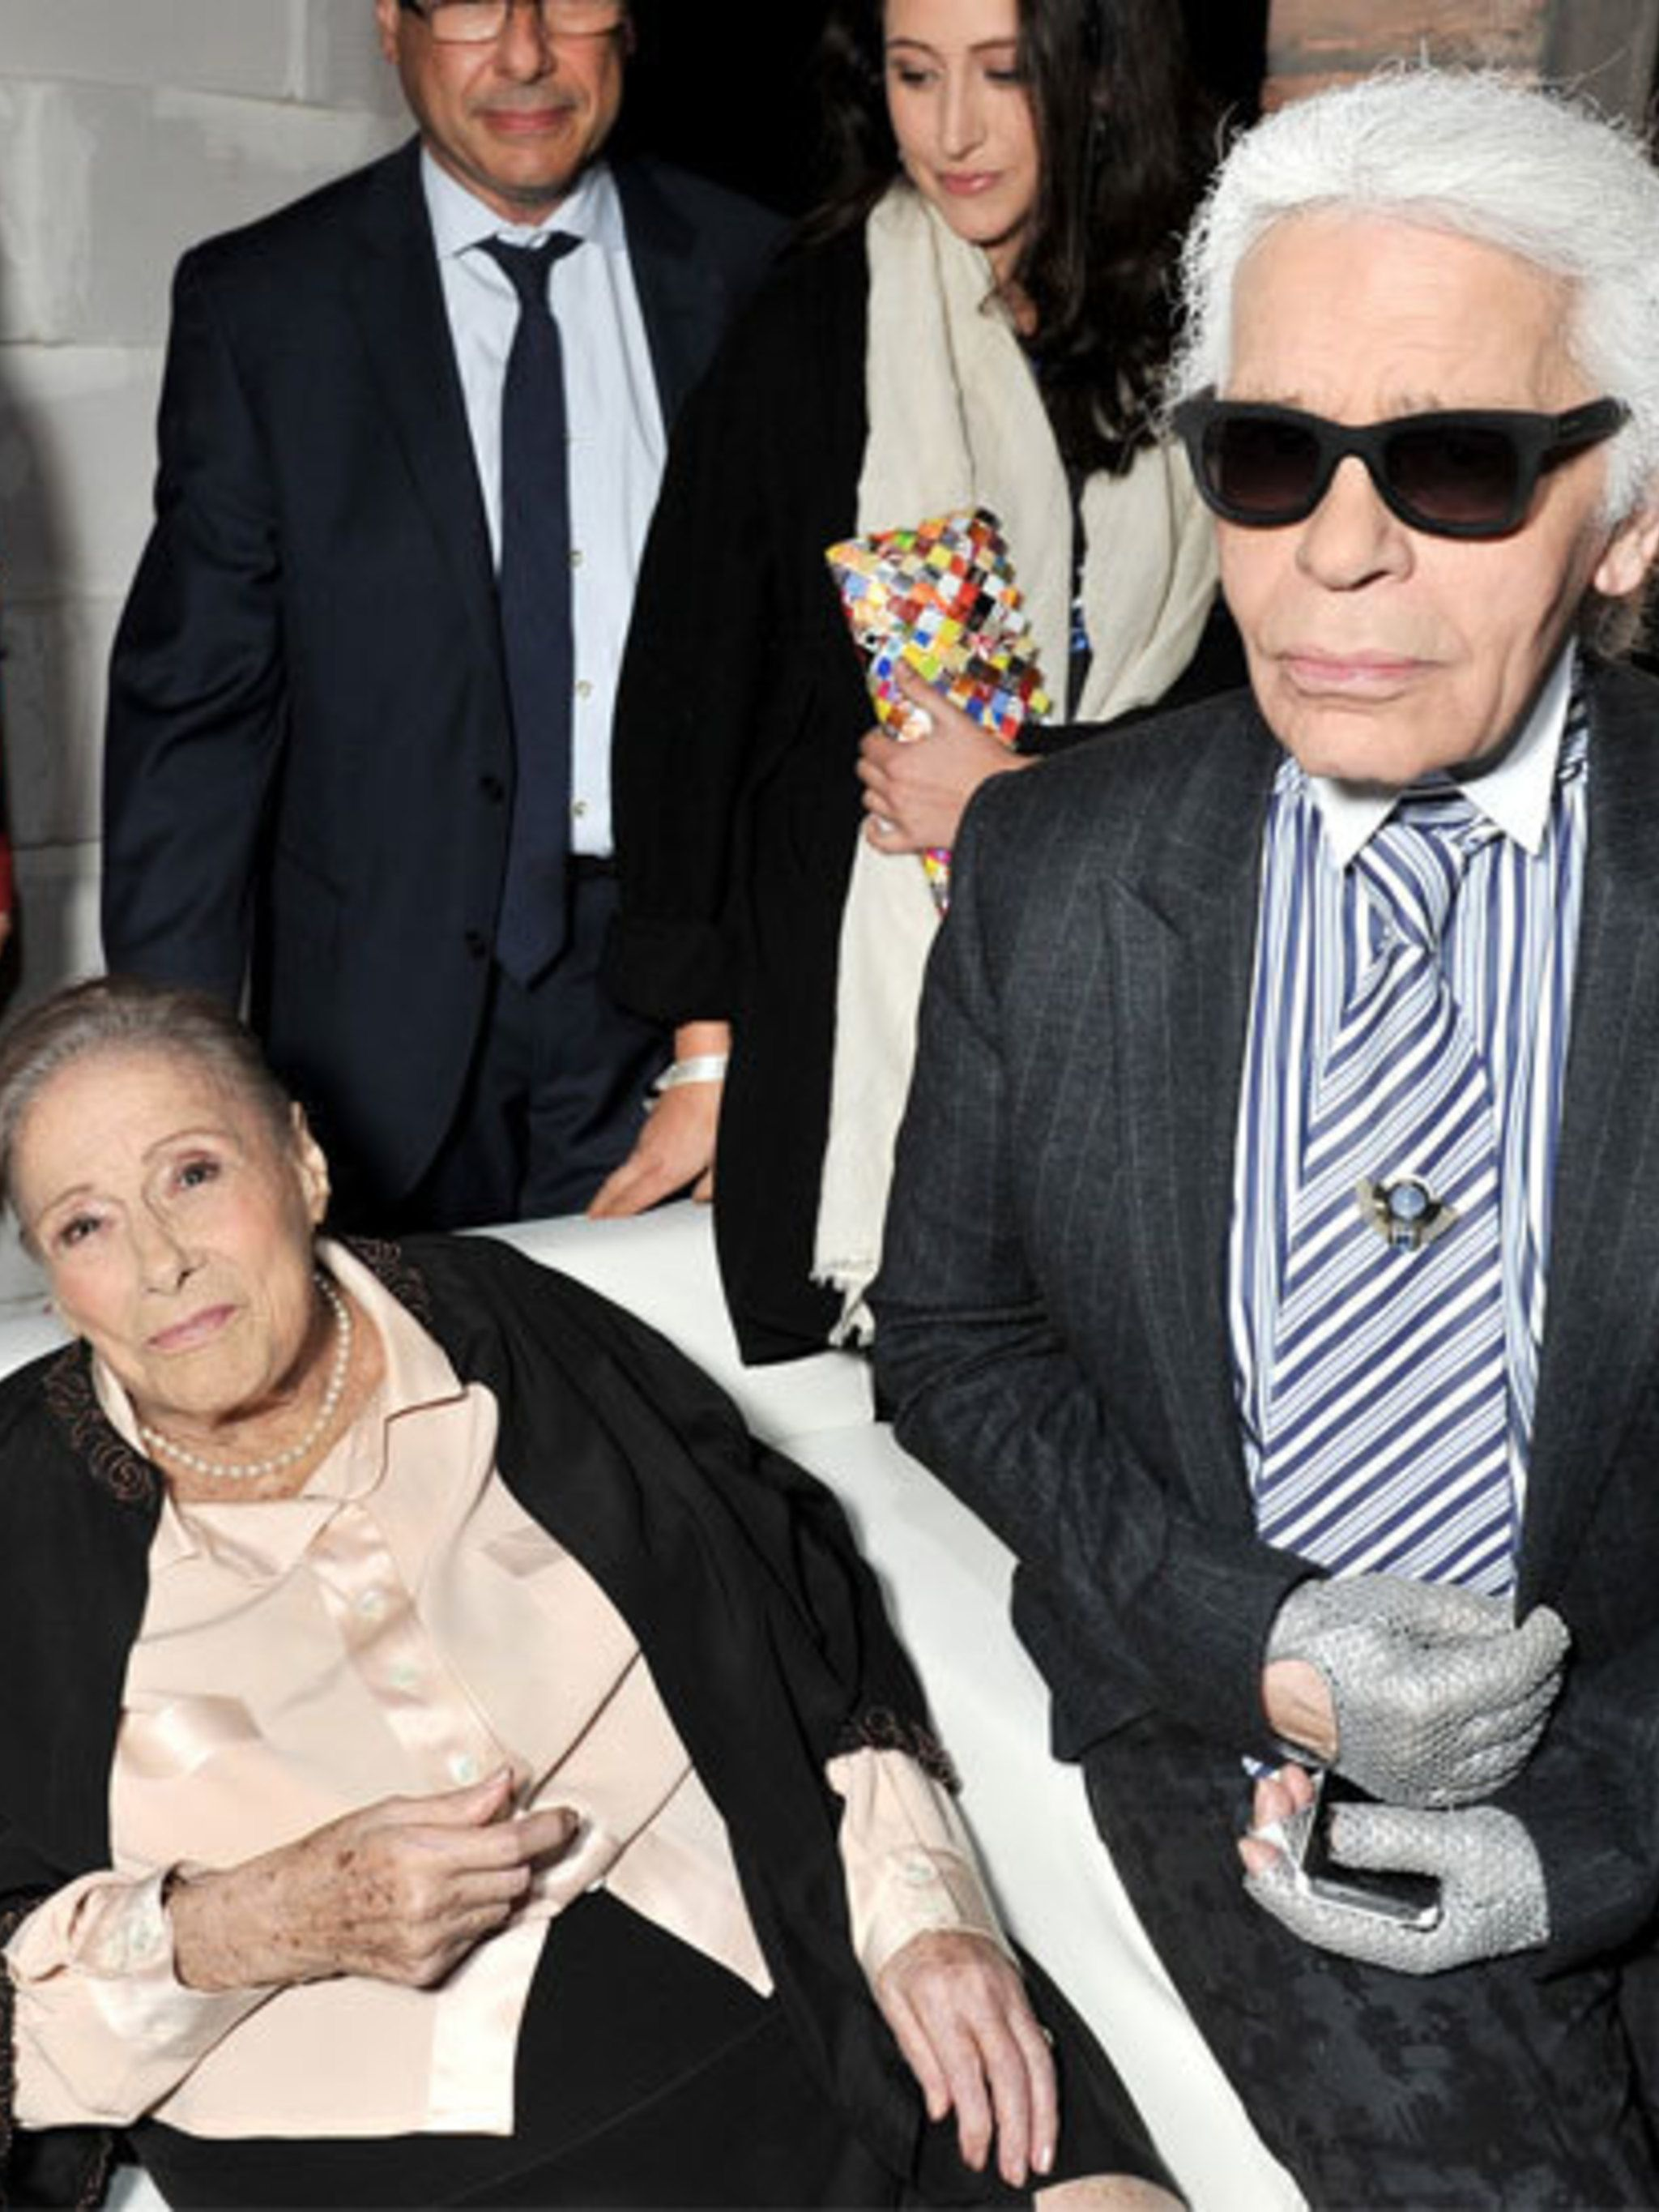 "<p>Former Chloe designer <a href=""http://www.elleuk.com/content/search?SearchText=Karl+Lagerfeld&SearchButto"">Karl Lagerfeld</a> and Chloe founder Gaby Aghion at the house's 60th anniversary party</p>"